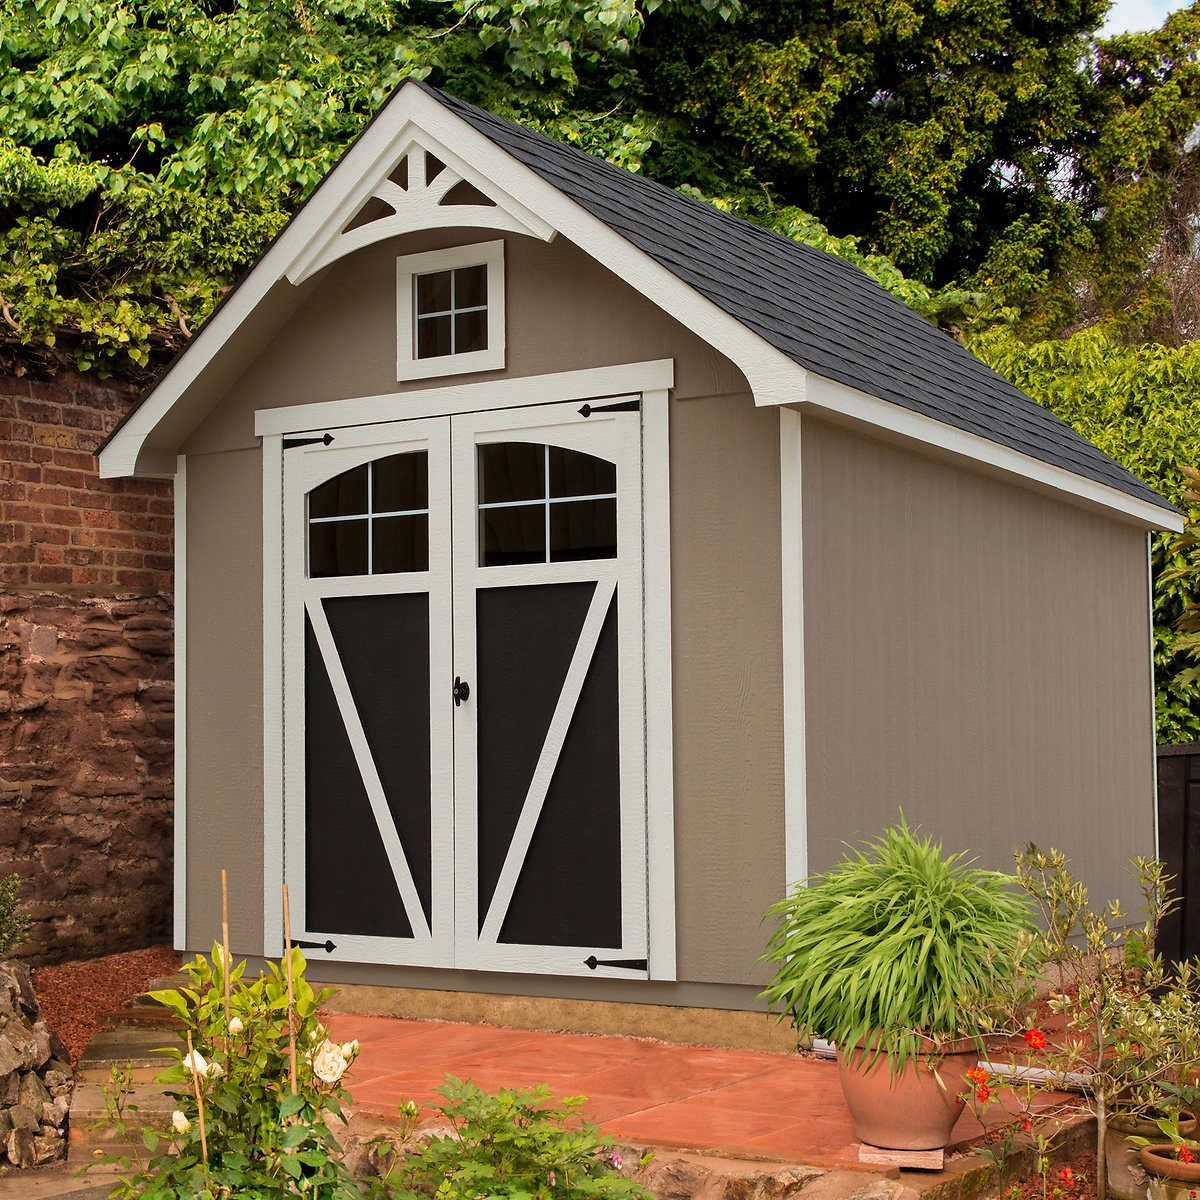 Ridgepointe 8 X 12 Wood Storage Shed Backyard Sheds Wood Storage Sheds Wood Shed Plans